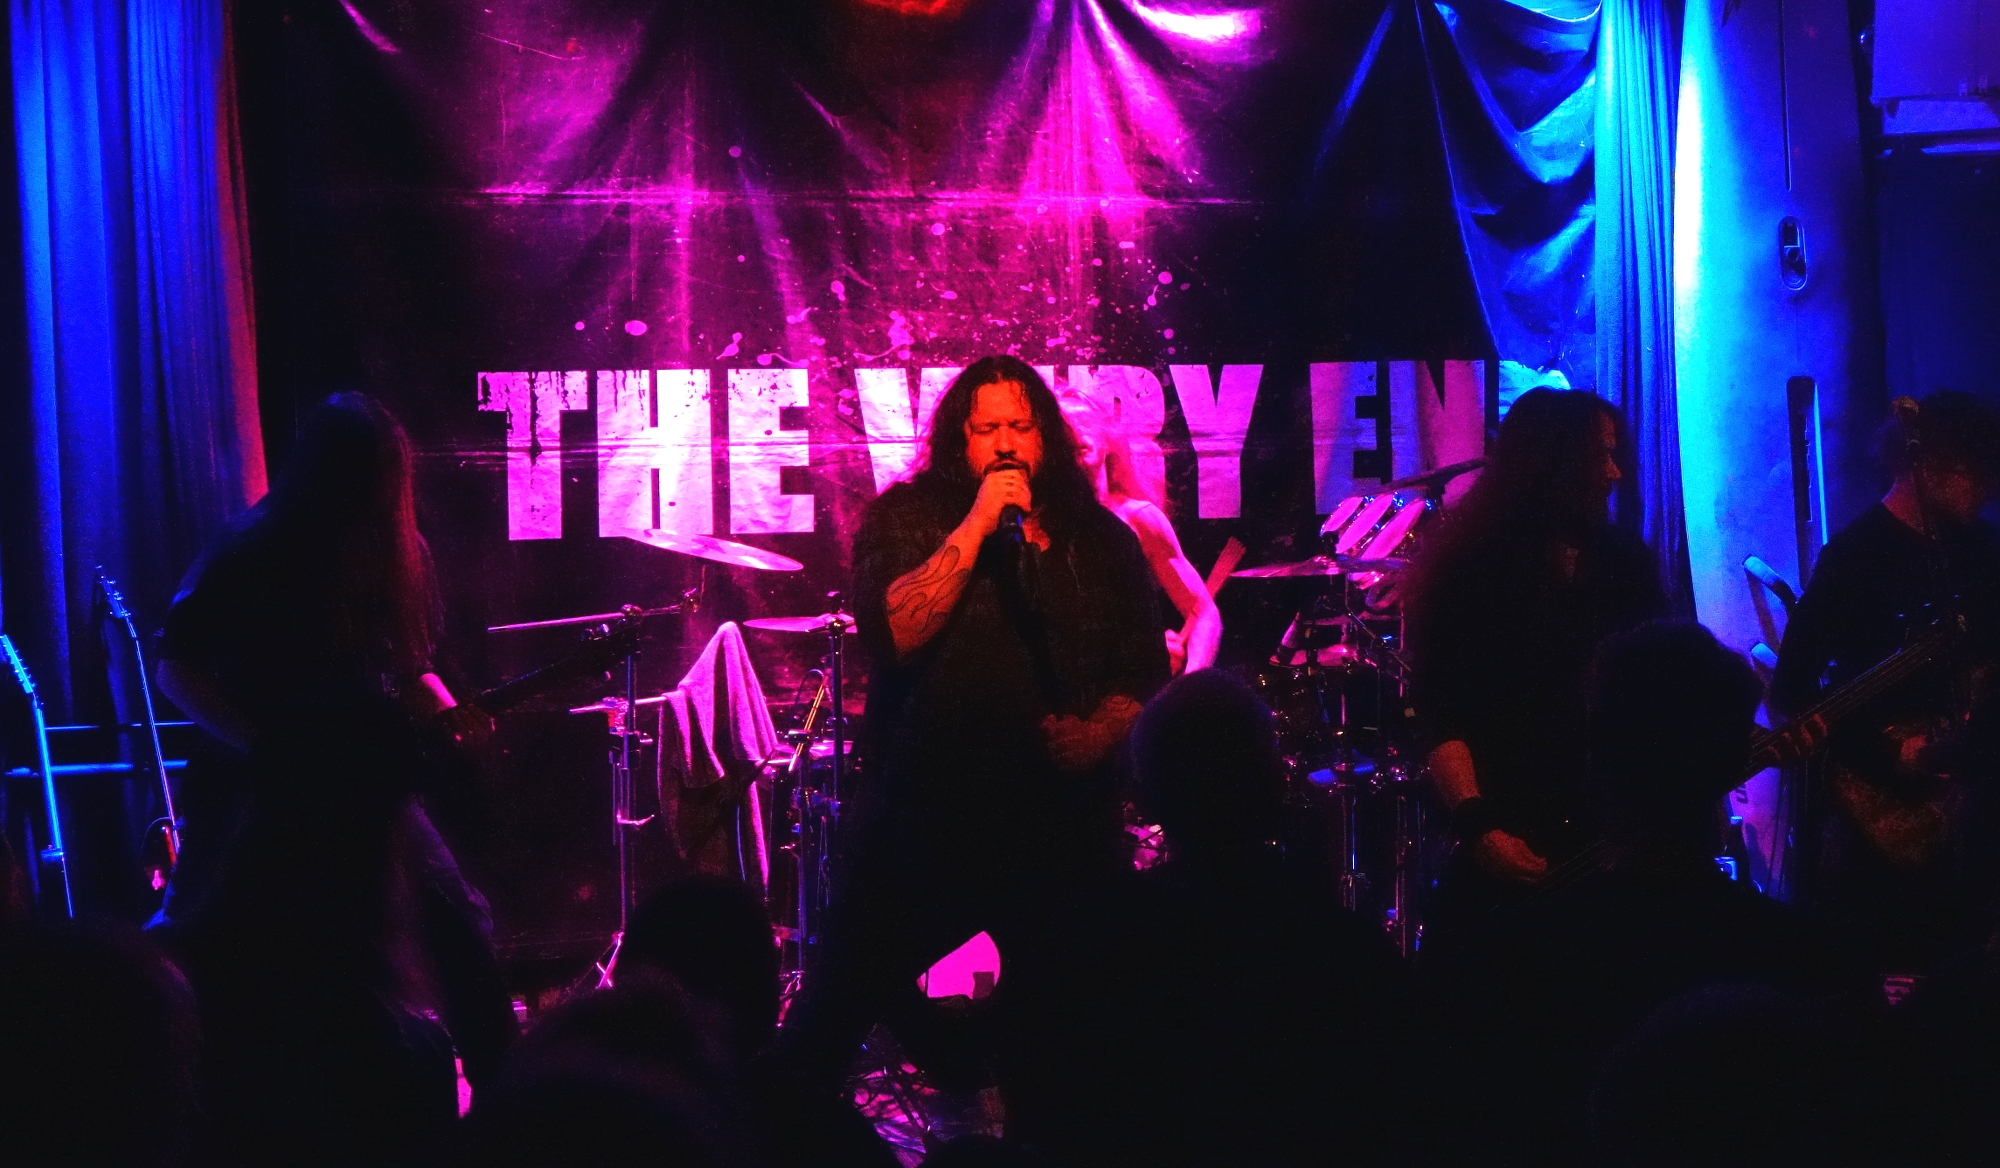 The-Very-End-live-Kulturrampe-Krefeld-2019-11